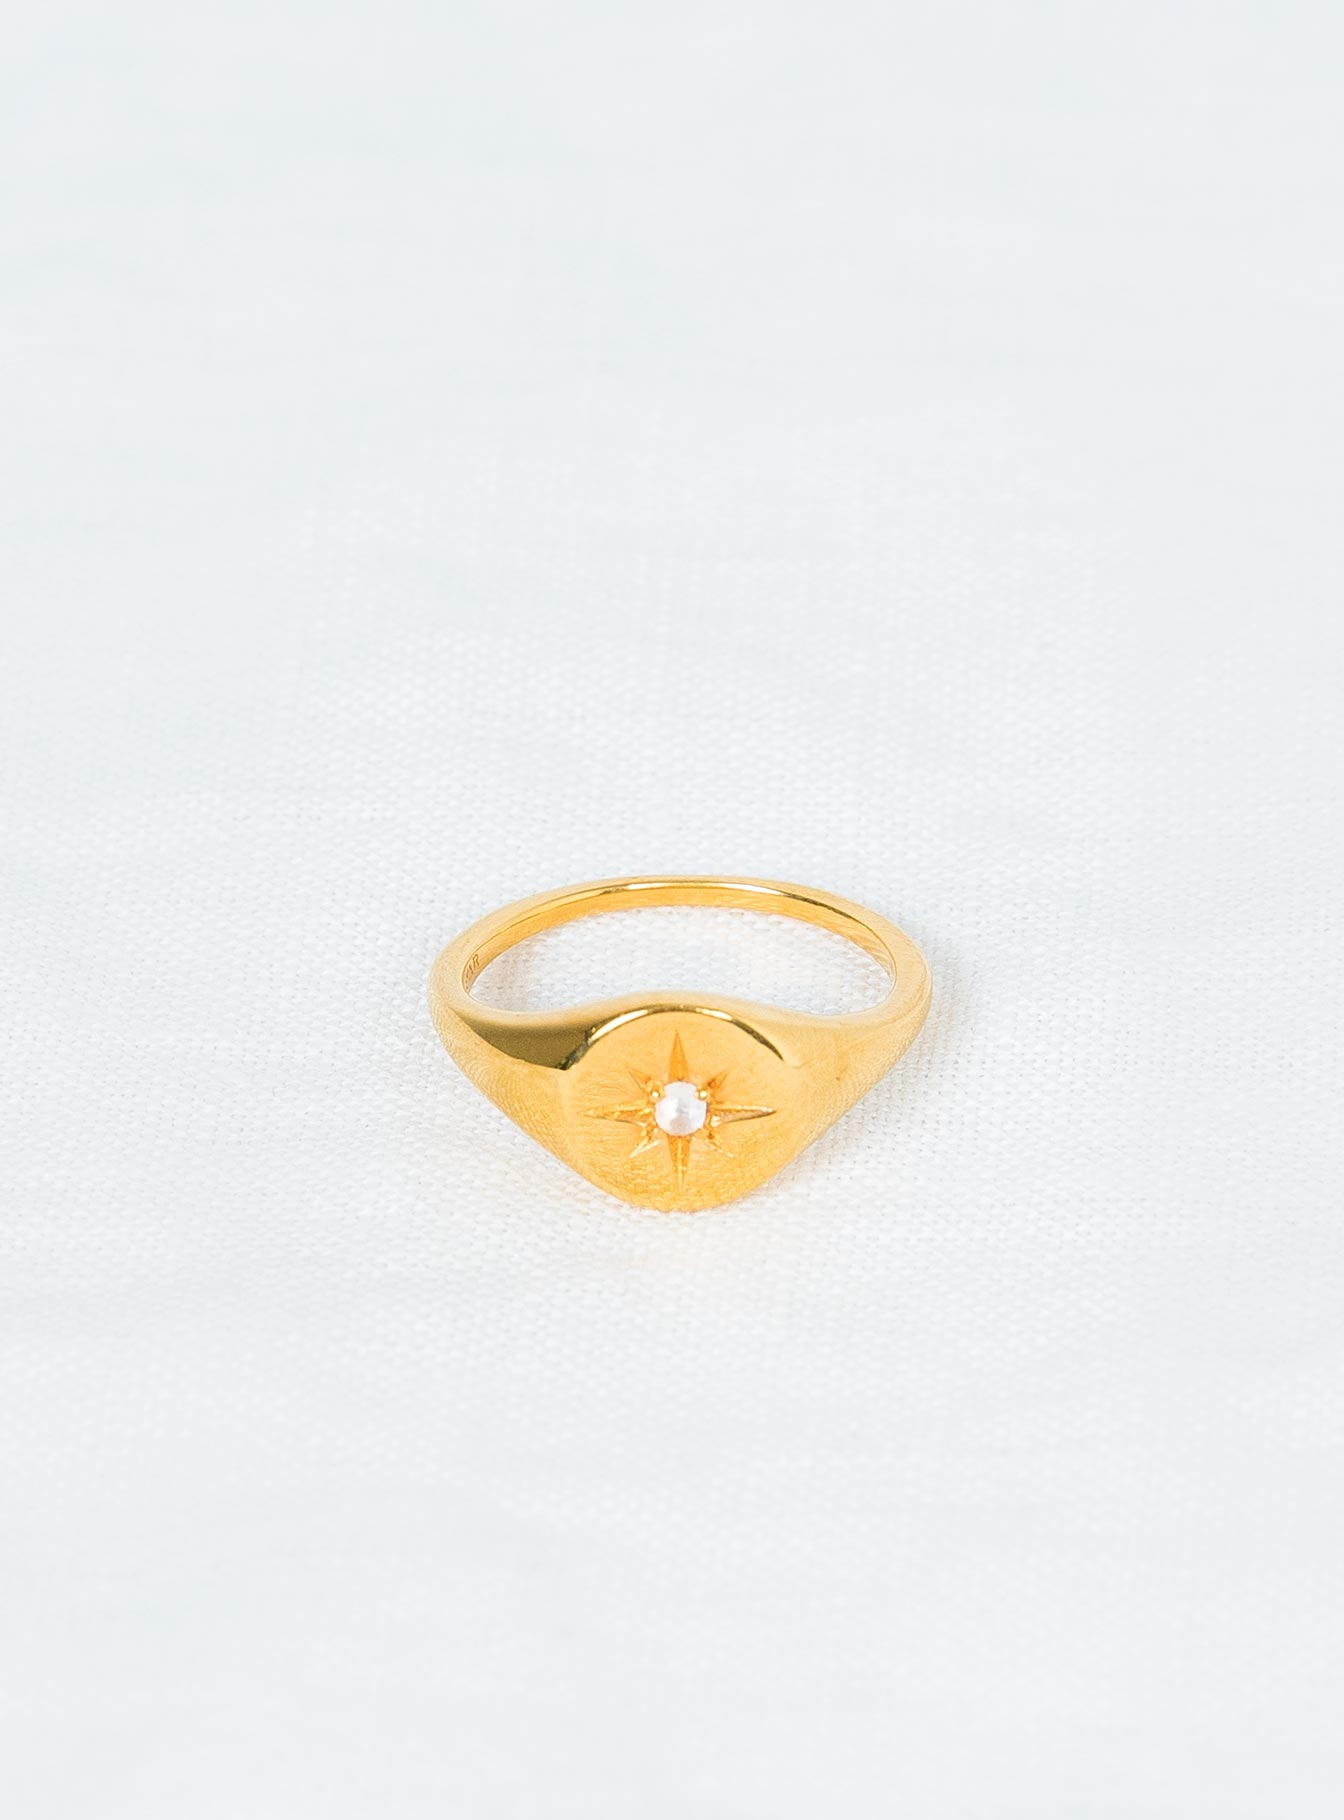 Midsummer Star Enchanted Light Moonstone Signet Ring Gold